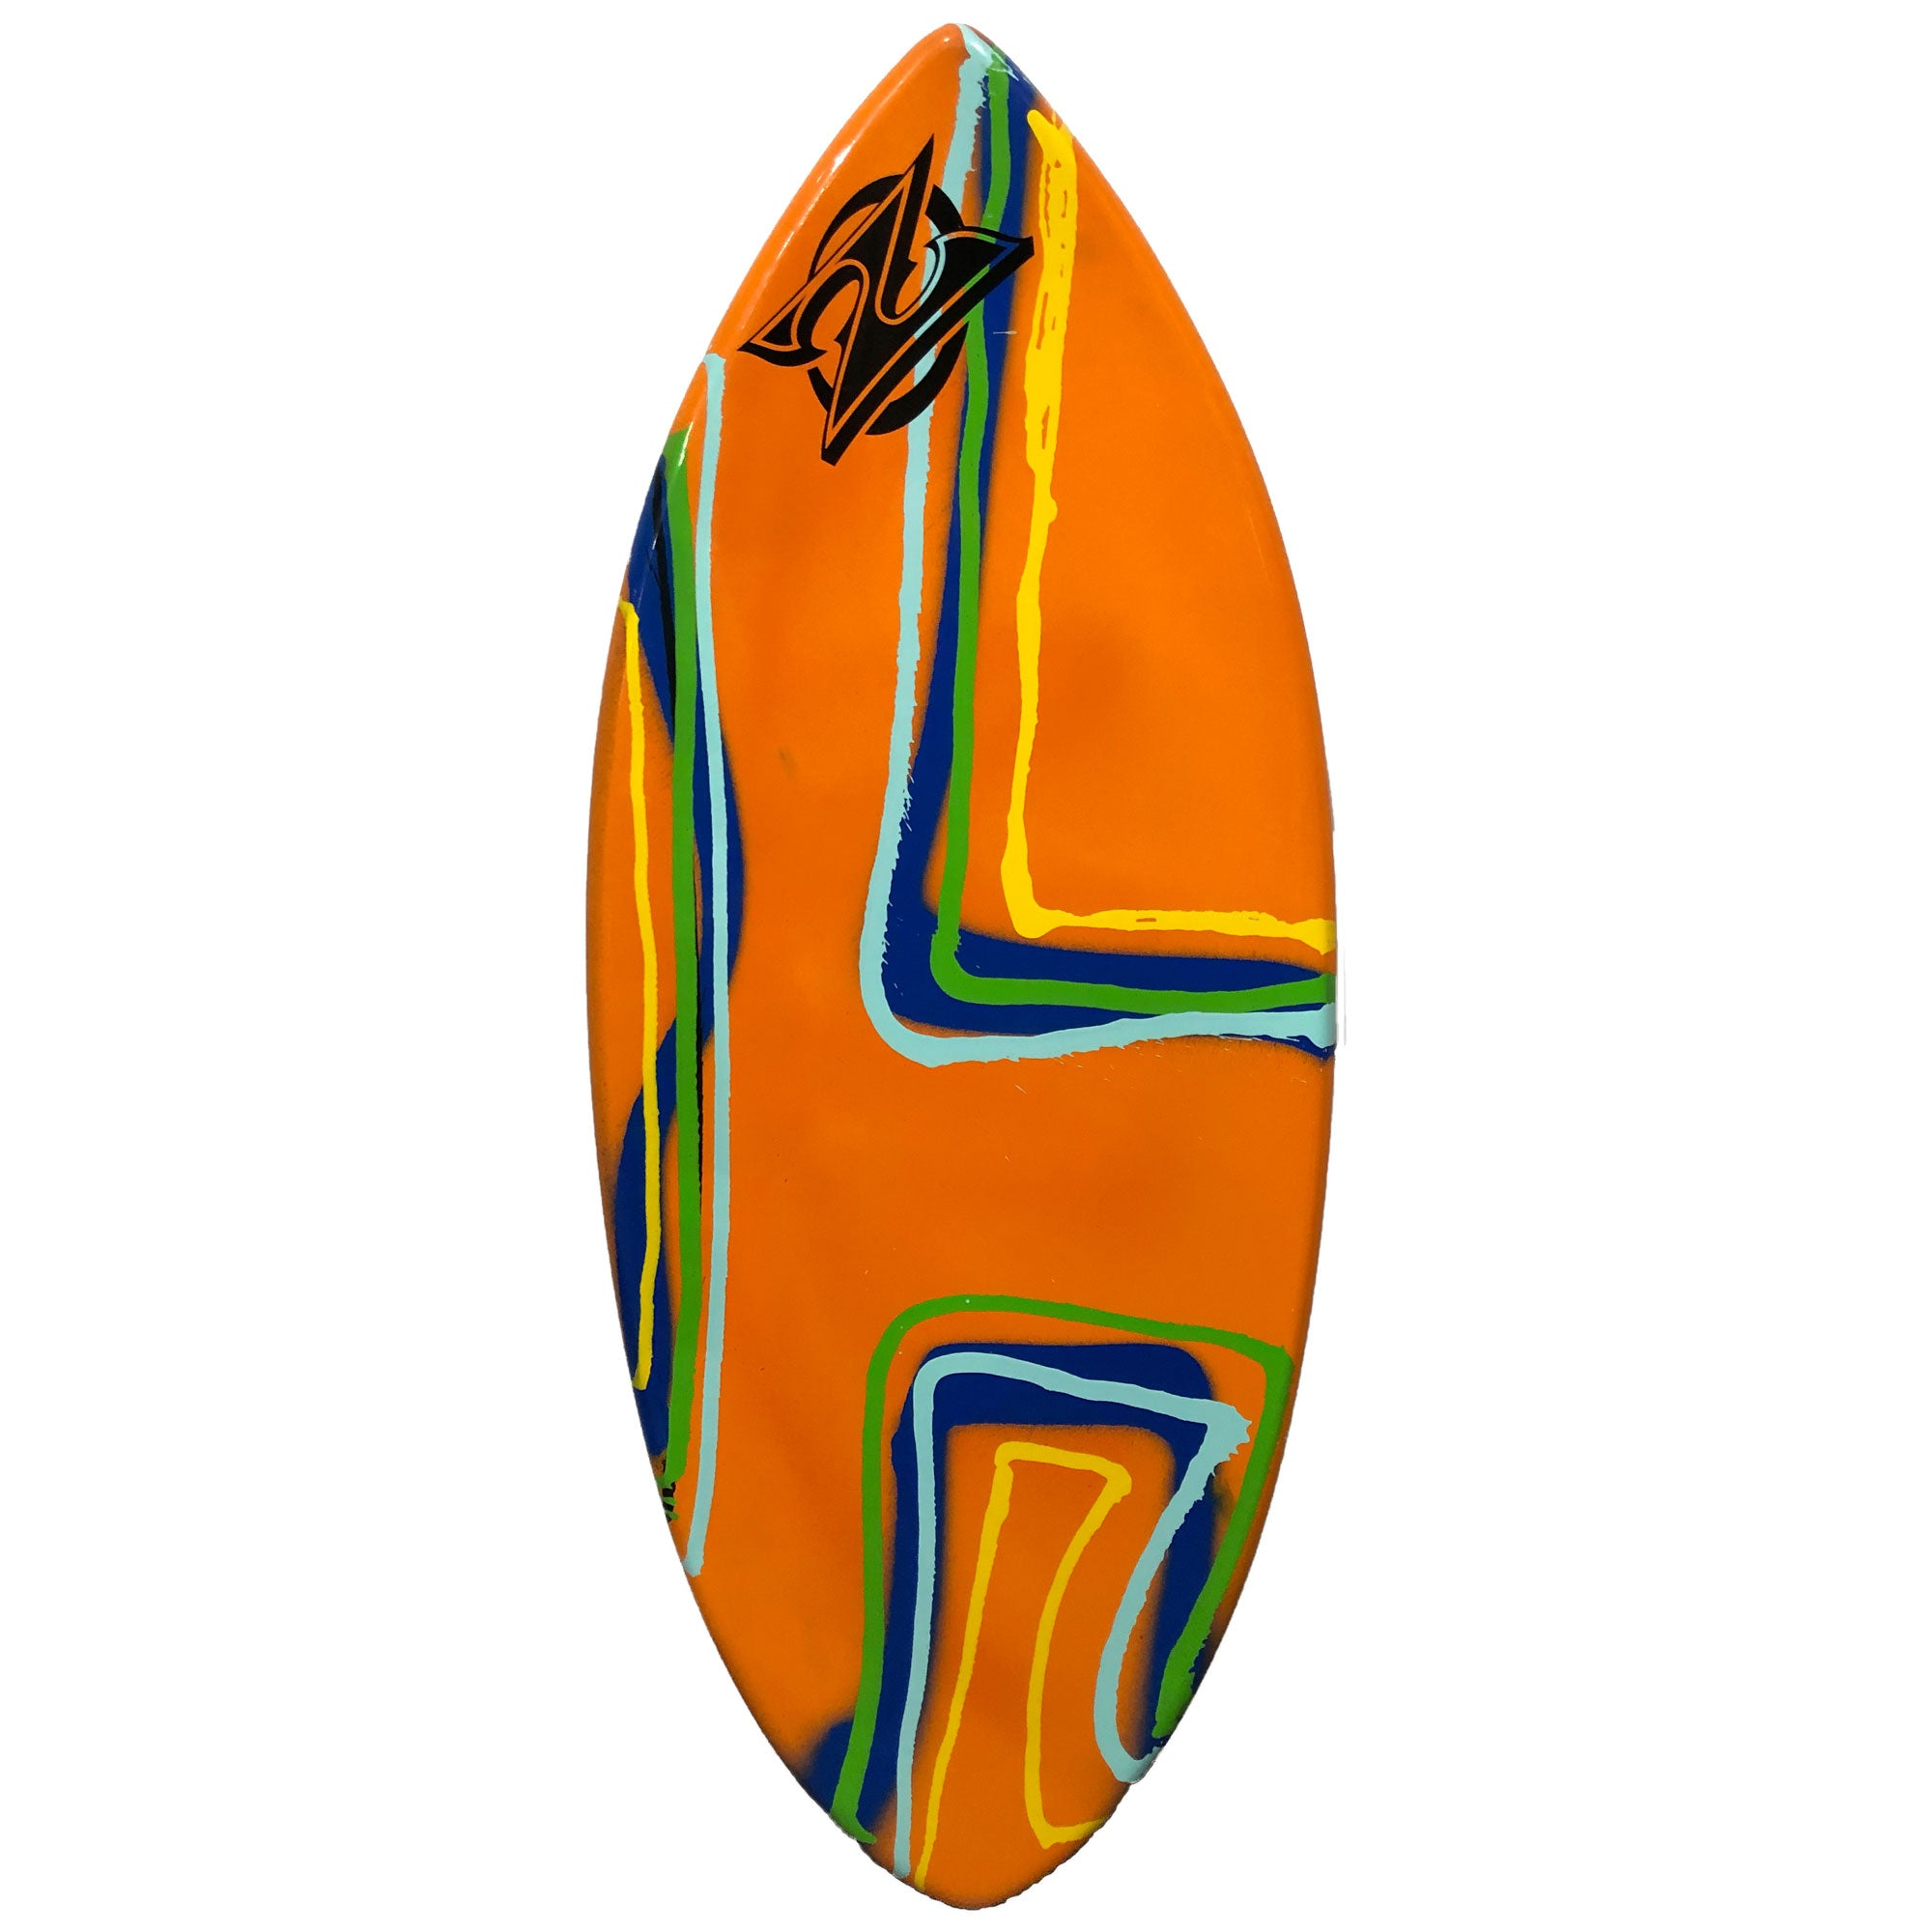 "Zap Wedge 49"" Skimboard - Orange w/ Multi"